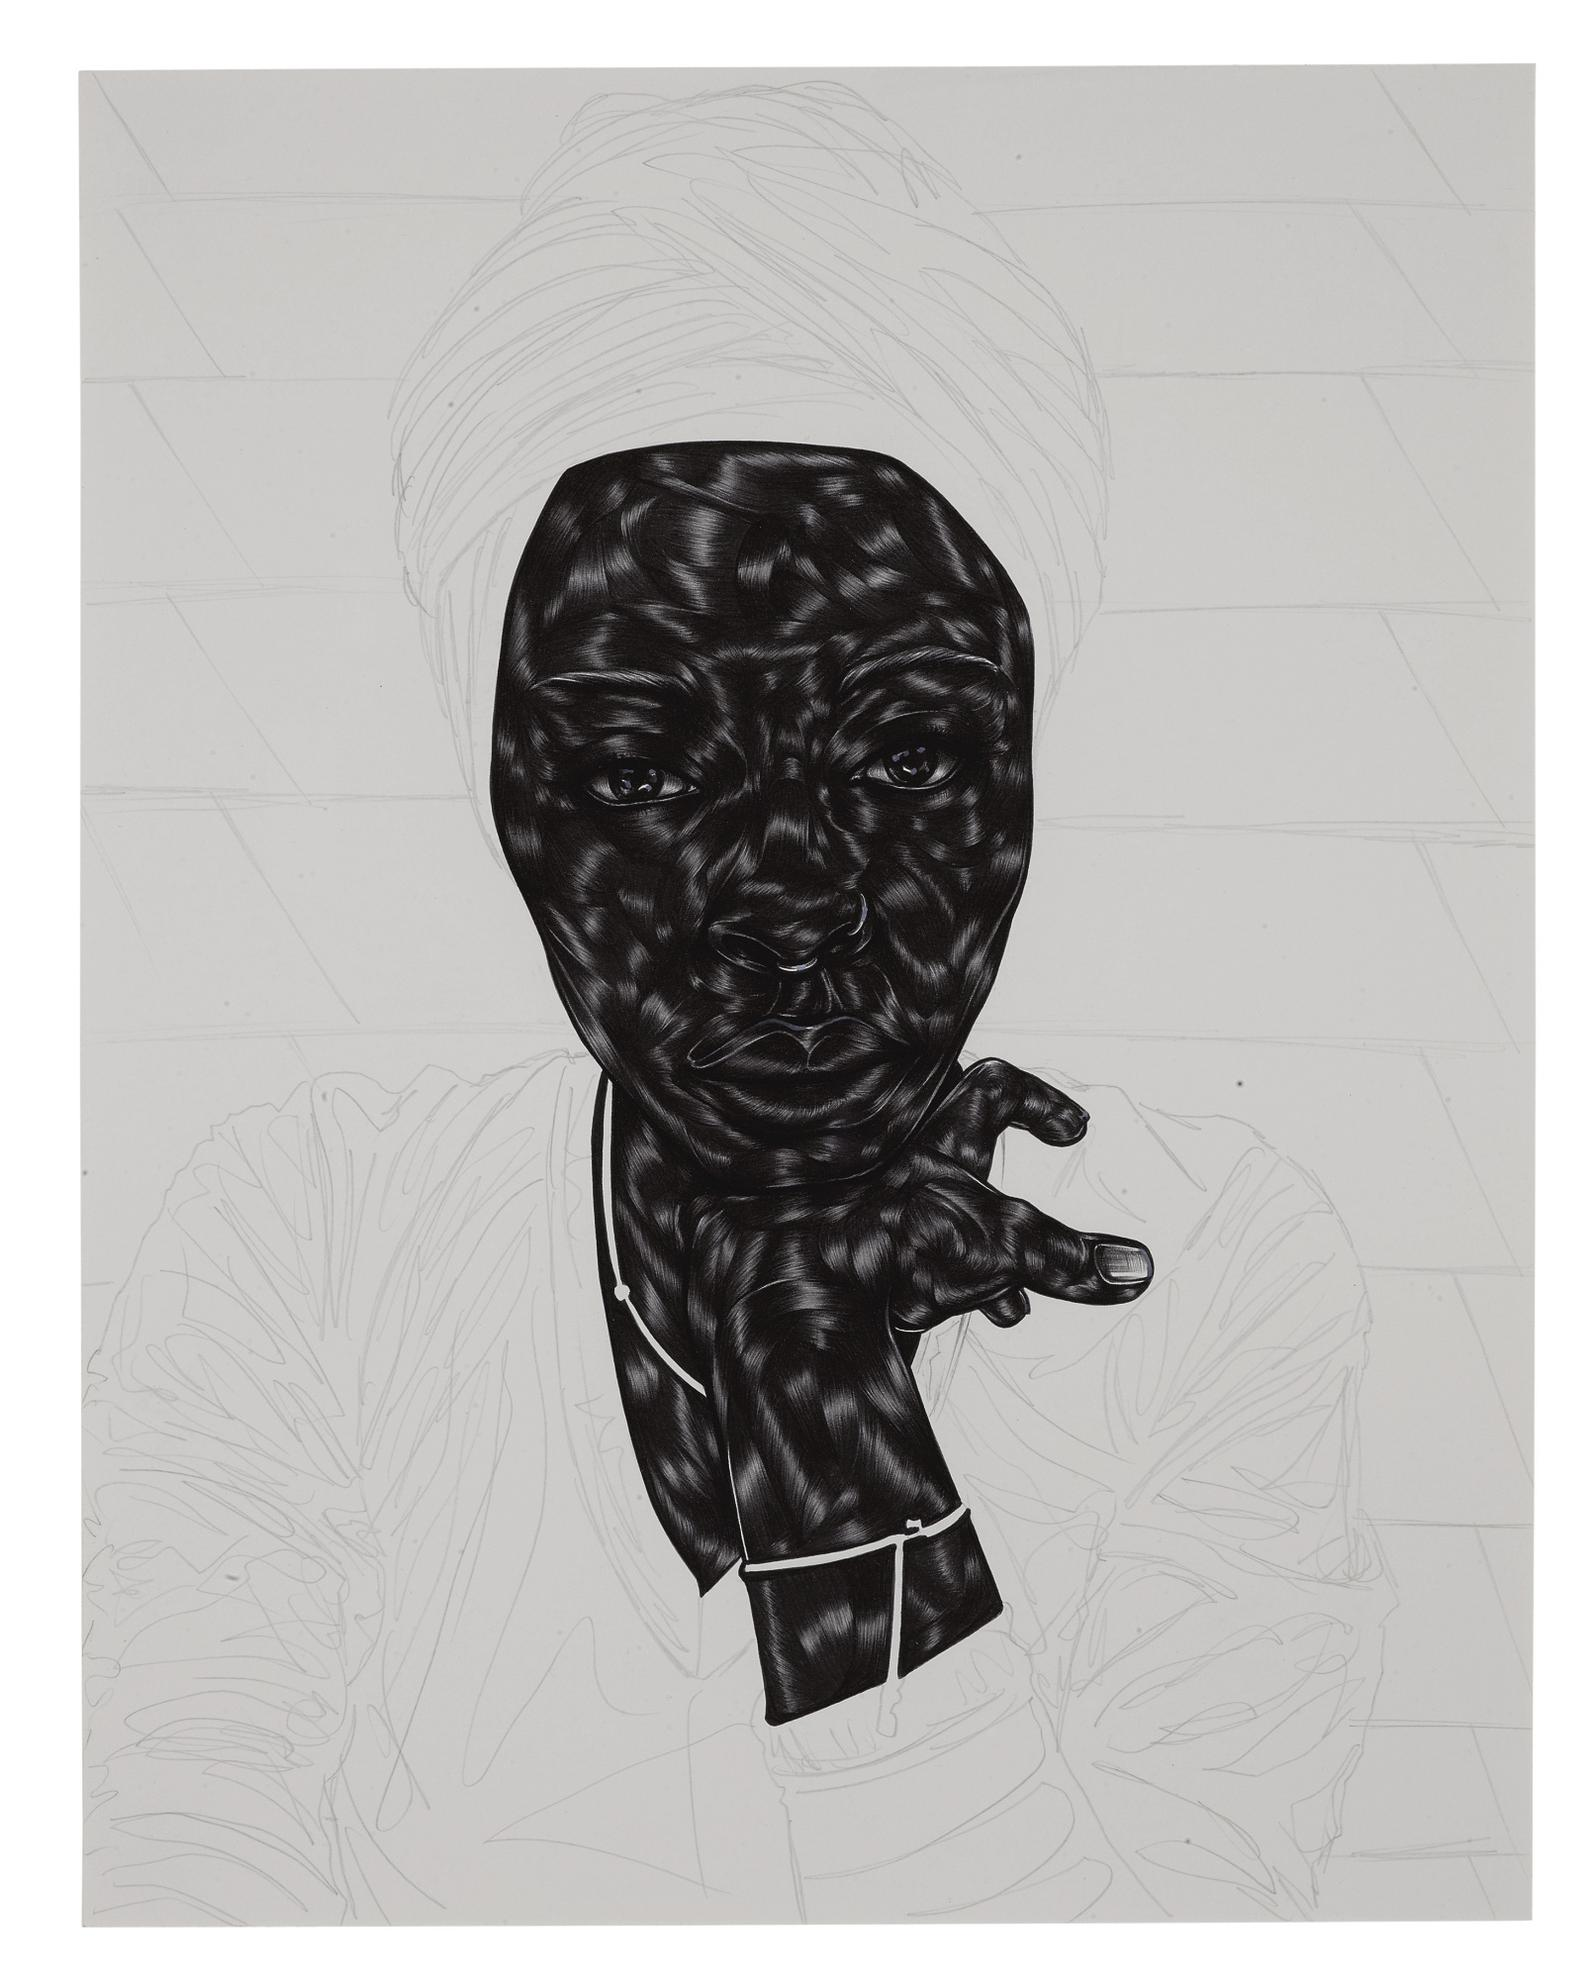 Toyin Ojih Odutola - From A Place Of Goodness-2018